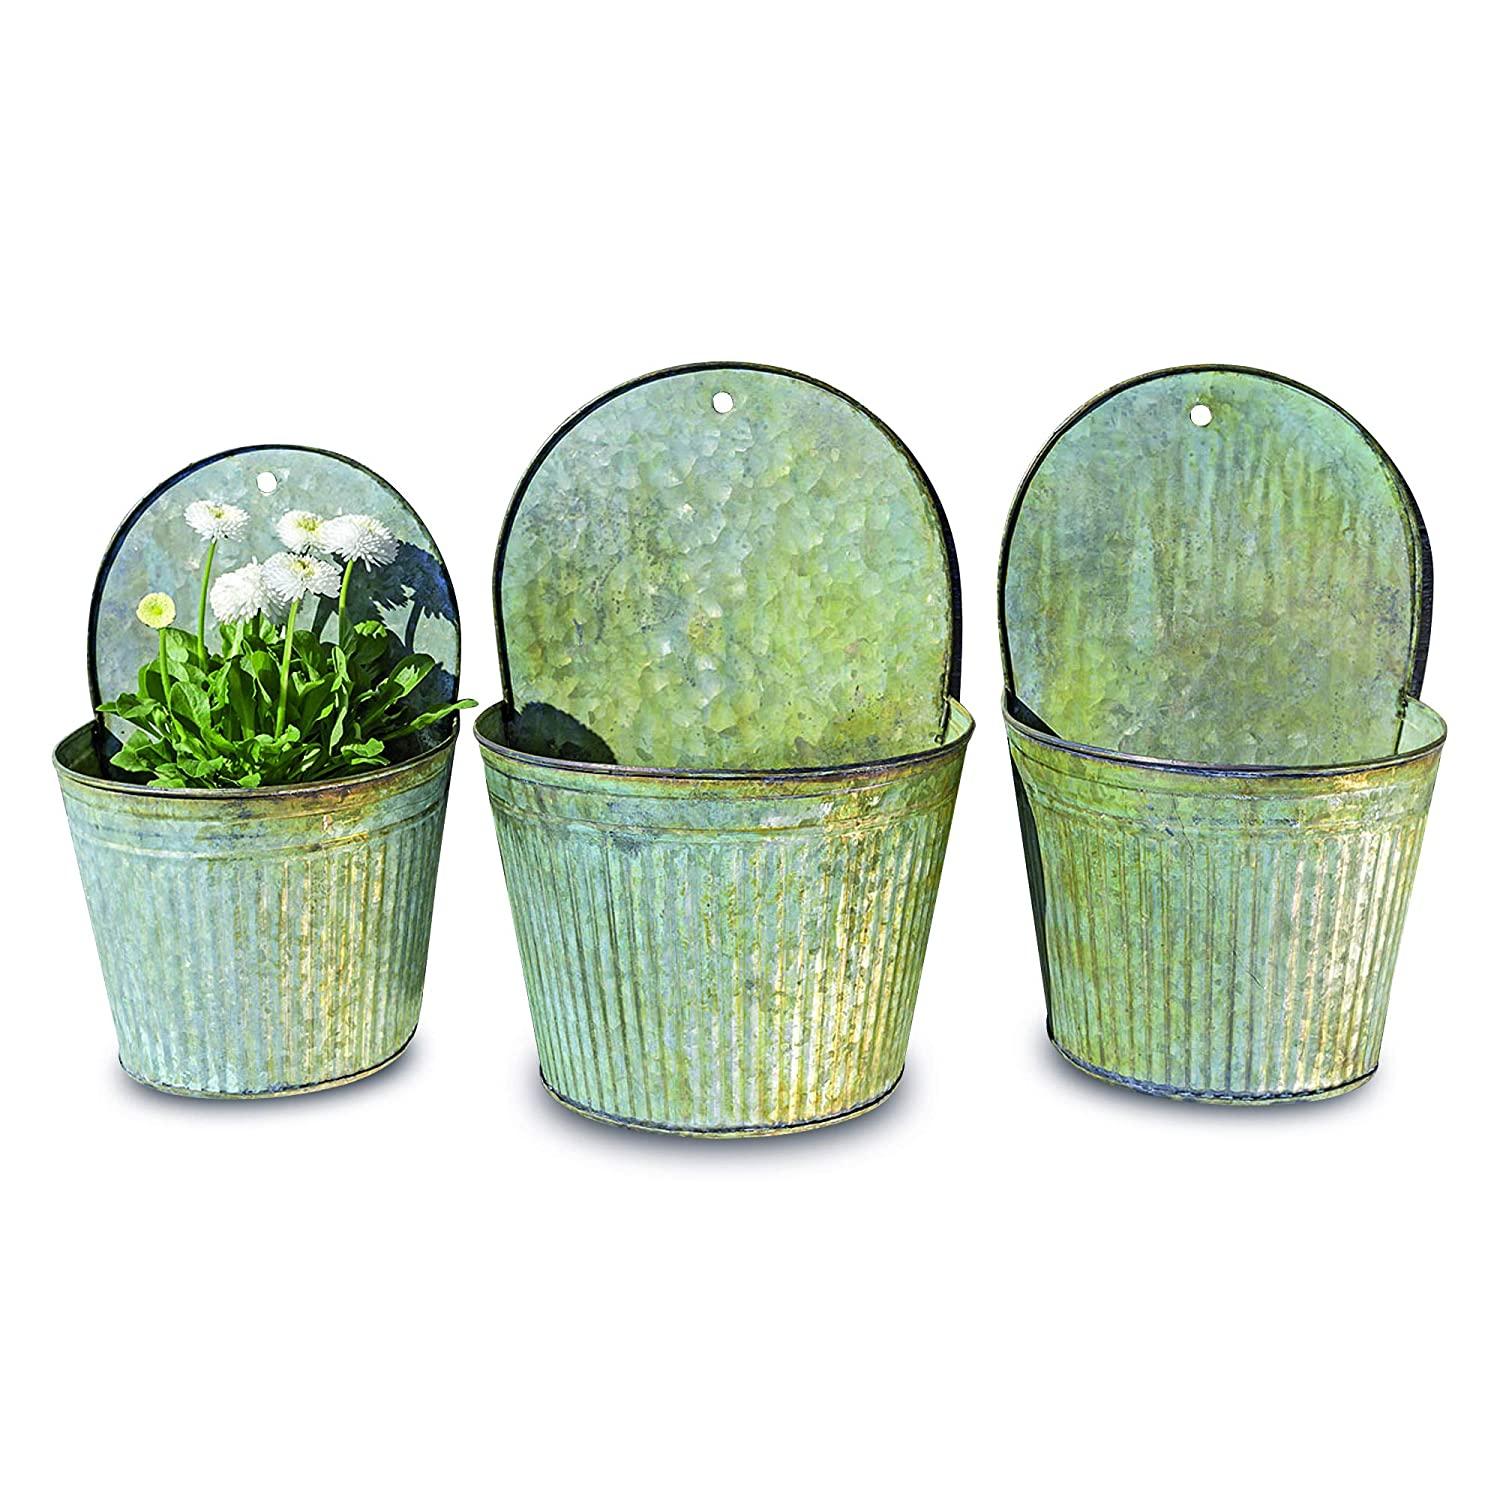 WHW Whole House Worlds Farmer's Market Feed Bin Wall Planters, Set of 3, Galvanized Metal, Corrugated, Rolled Edges, Distressed Vintage Finish, 13 1/2, 12 1/4 and 11 Inches High